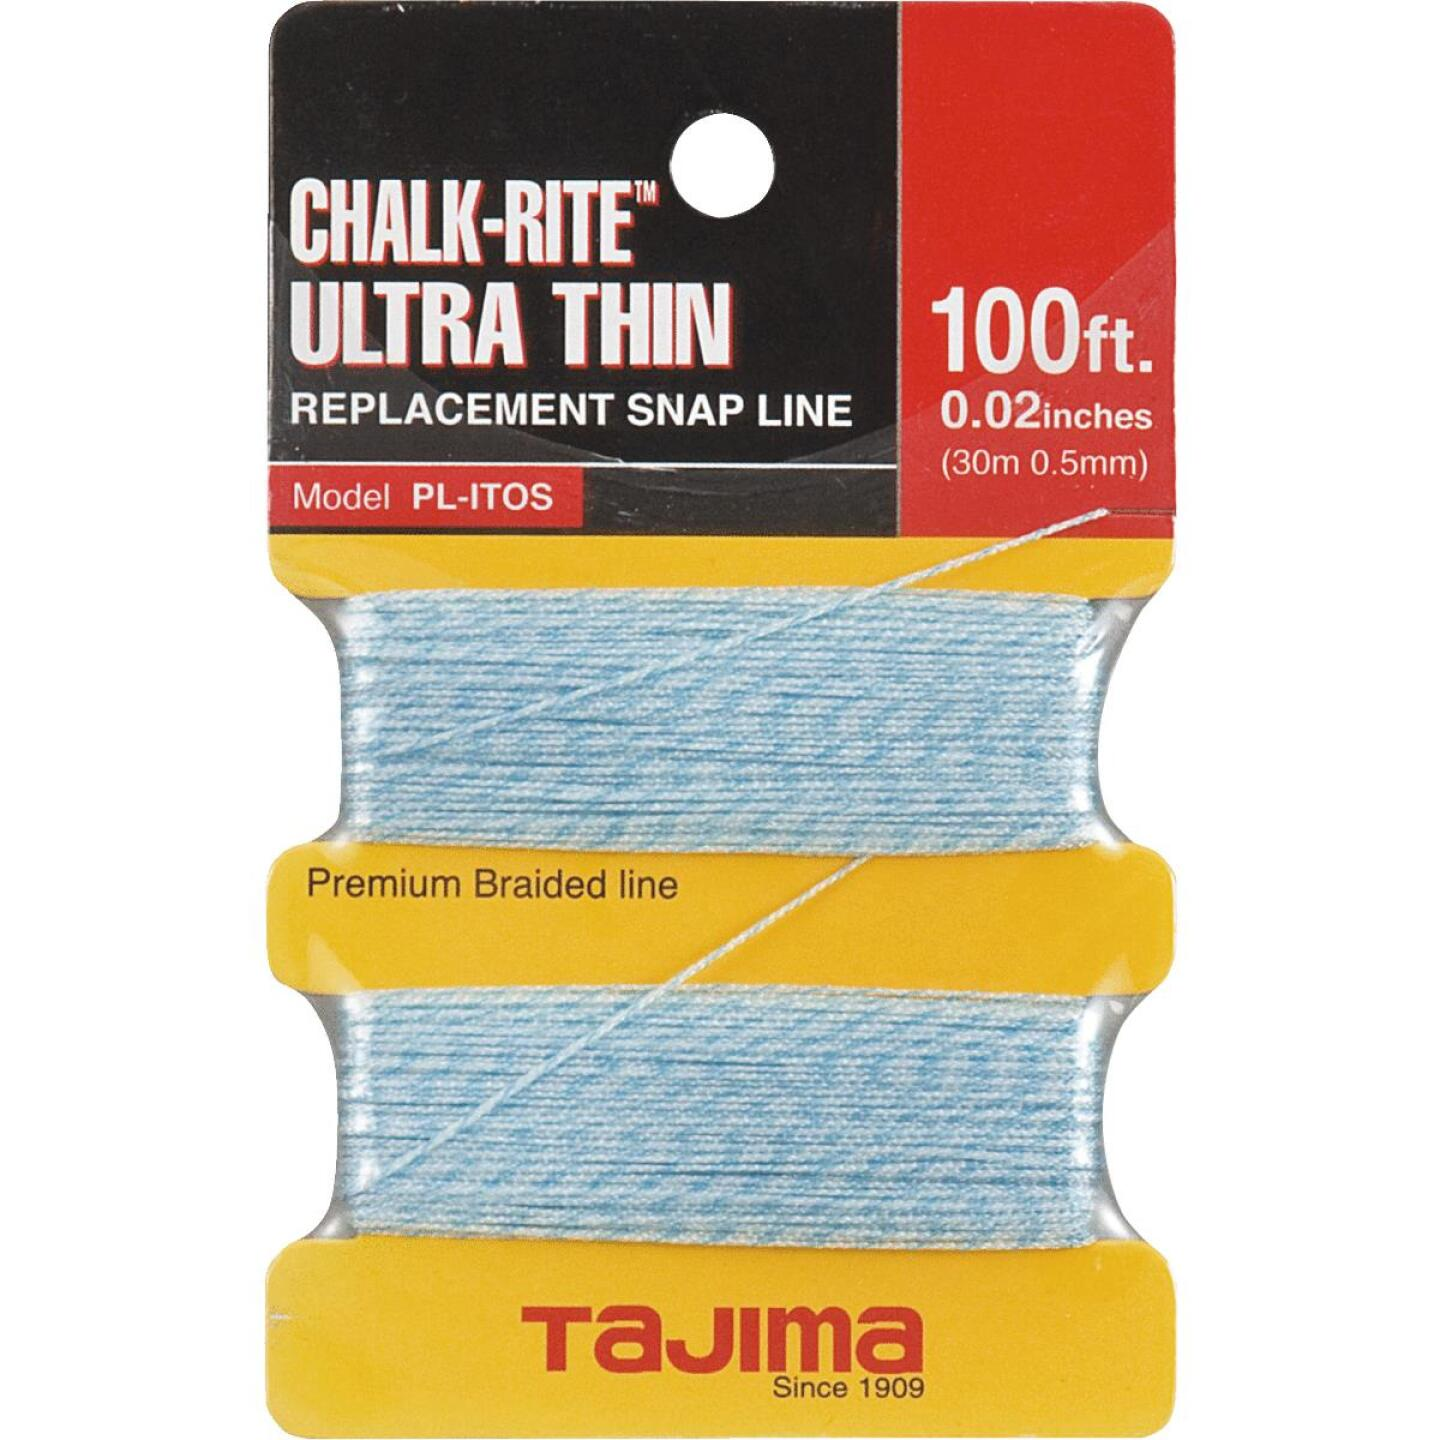 Tajima Chalk-Rite 100 Ft. Braided Nylon Ultra Thin Chalk Line Image 1